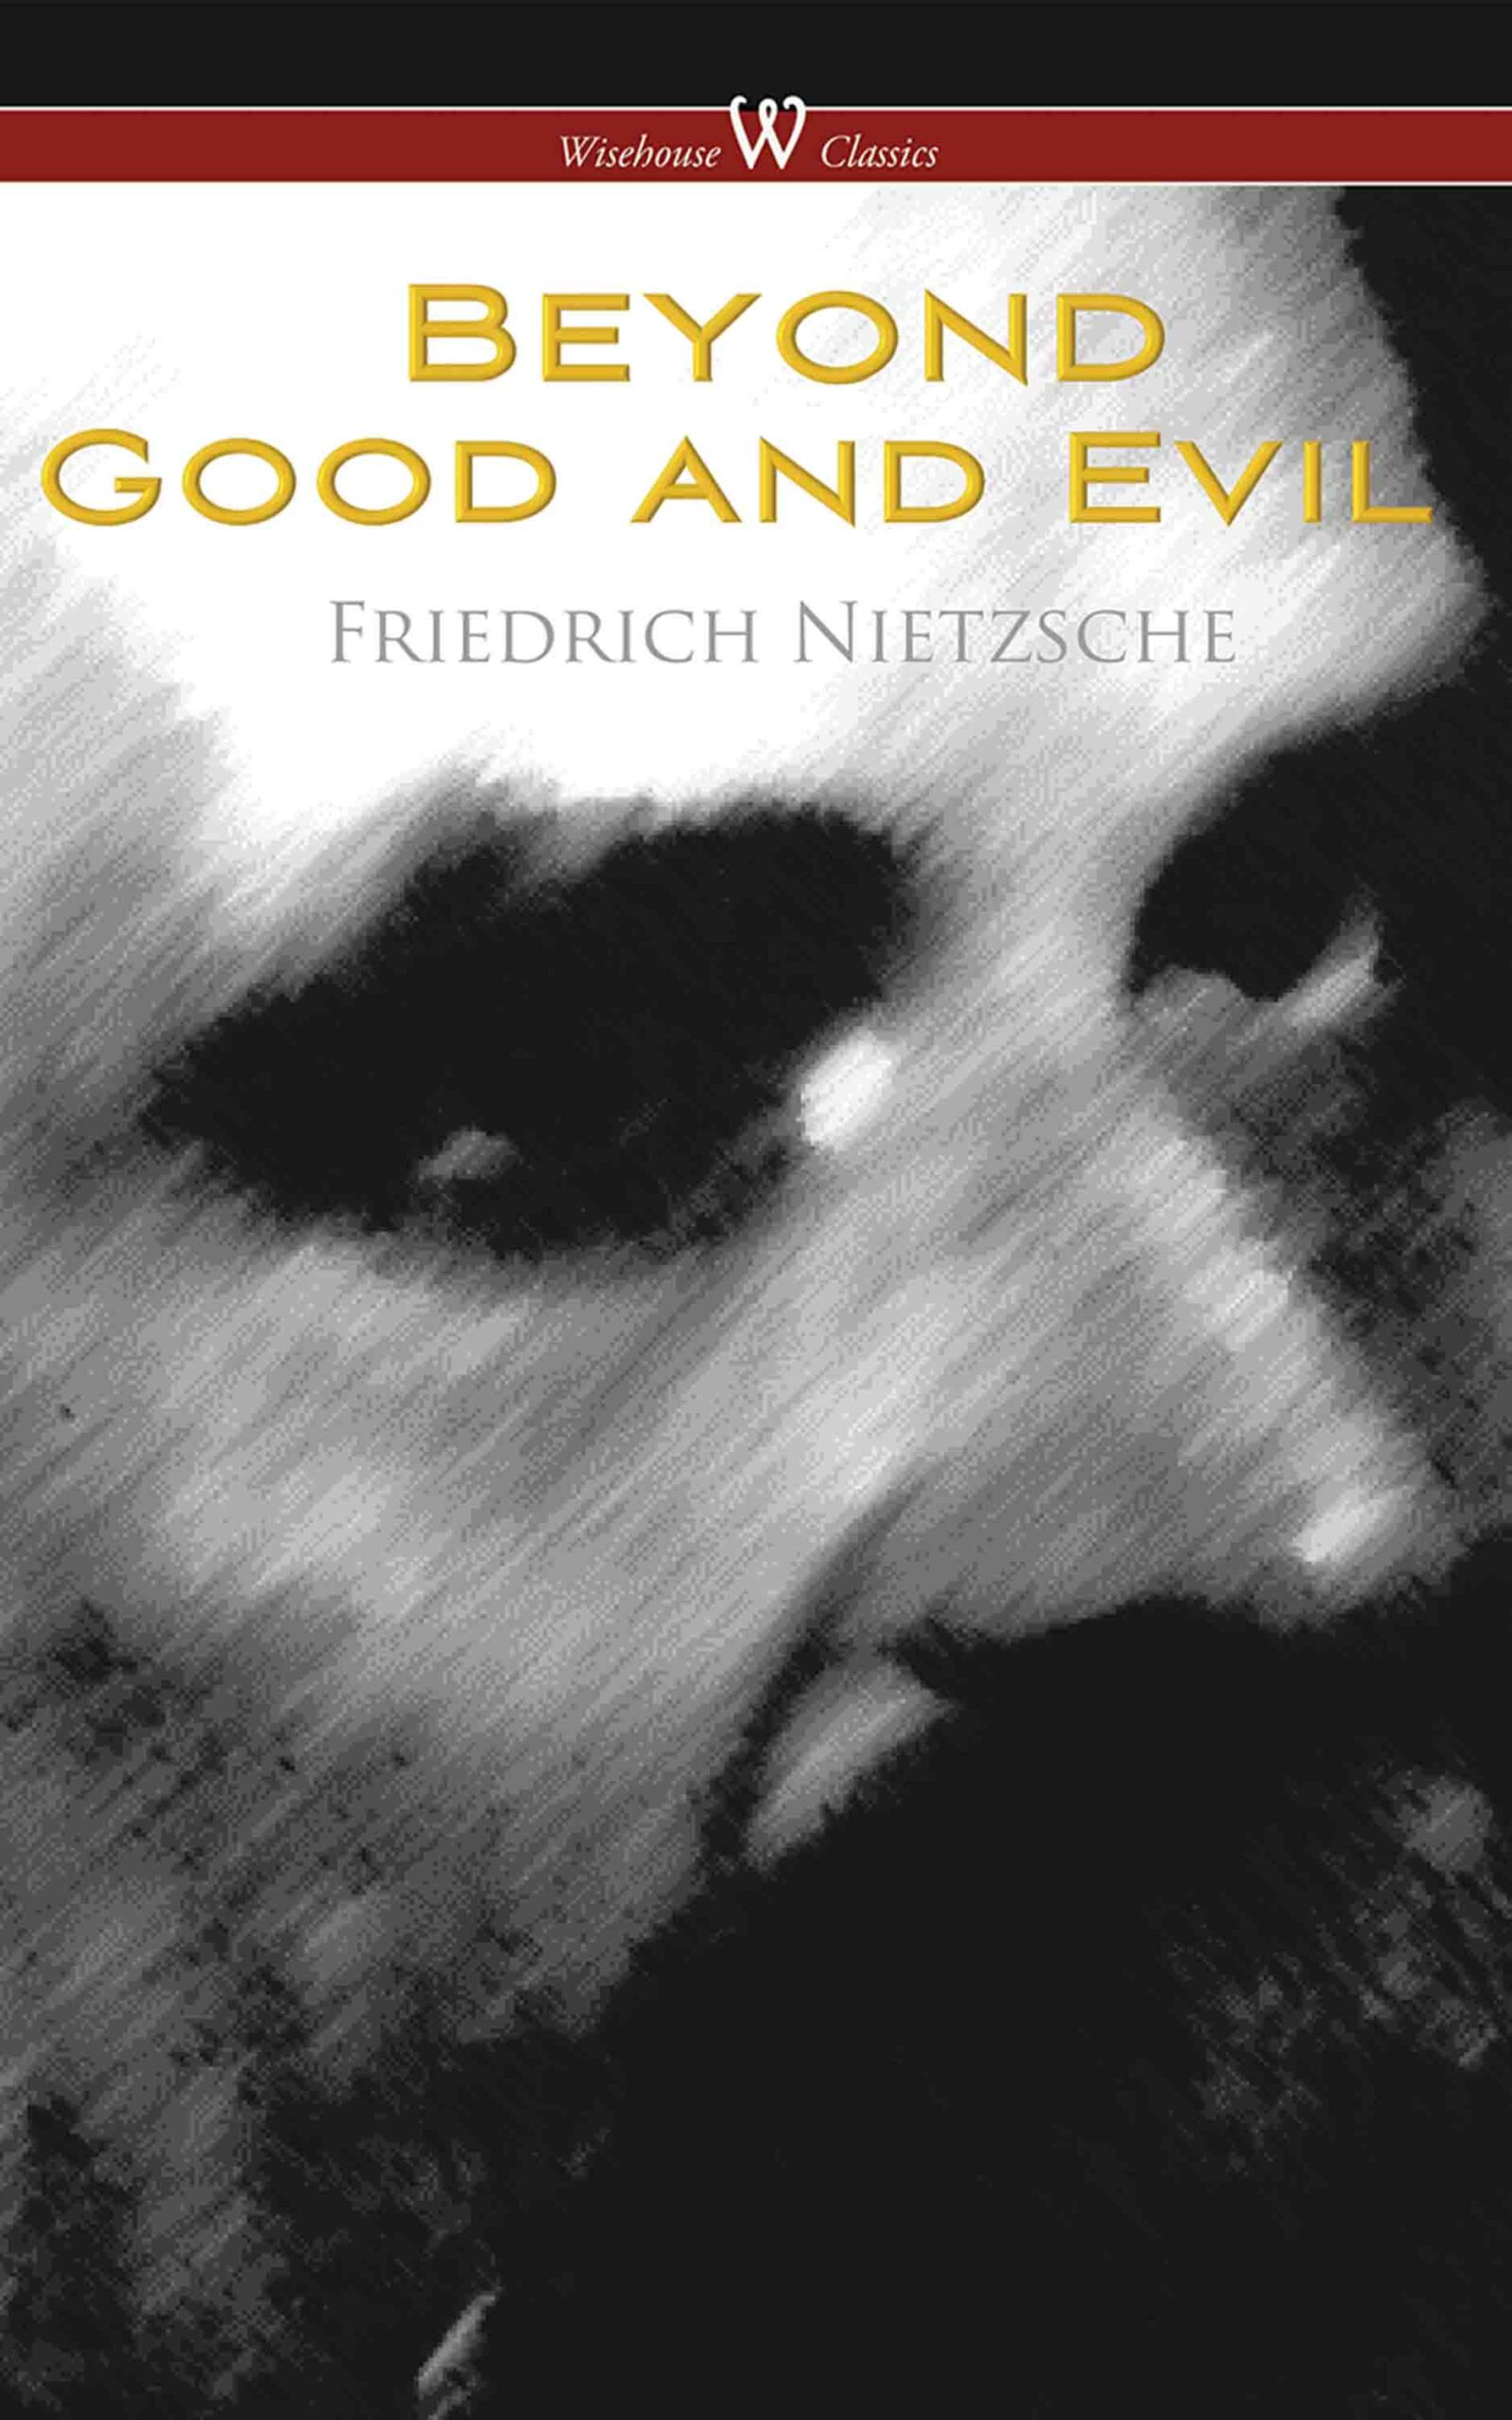 Beyond Good and Evil: Prelude to a Future Philosophy (Wisehouse Classics Edition)